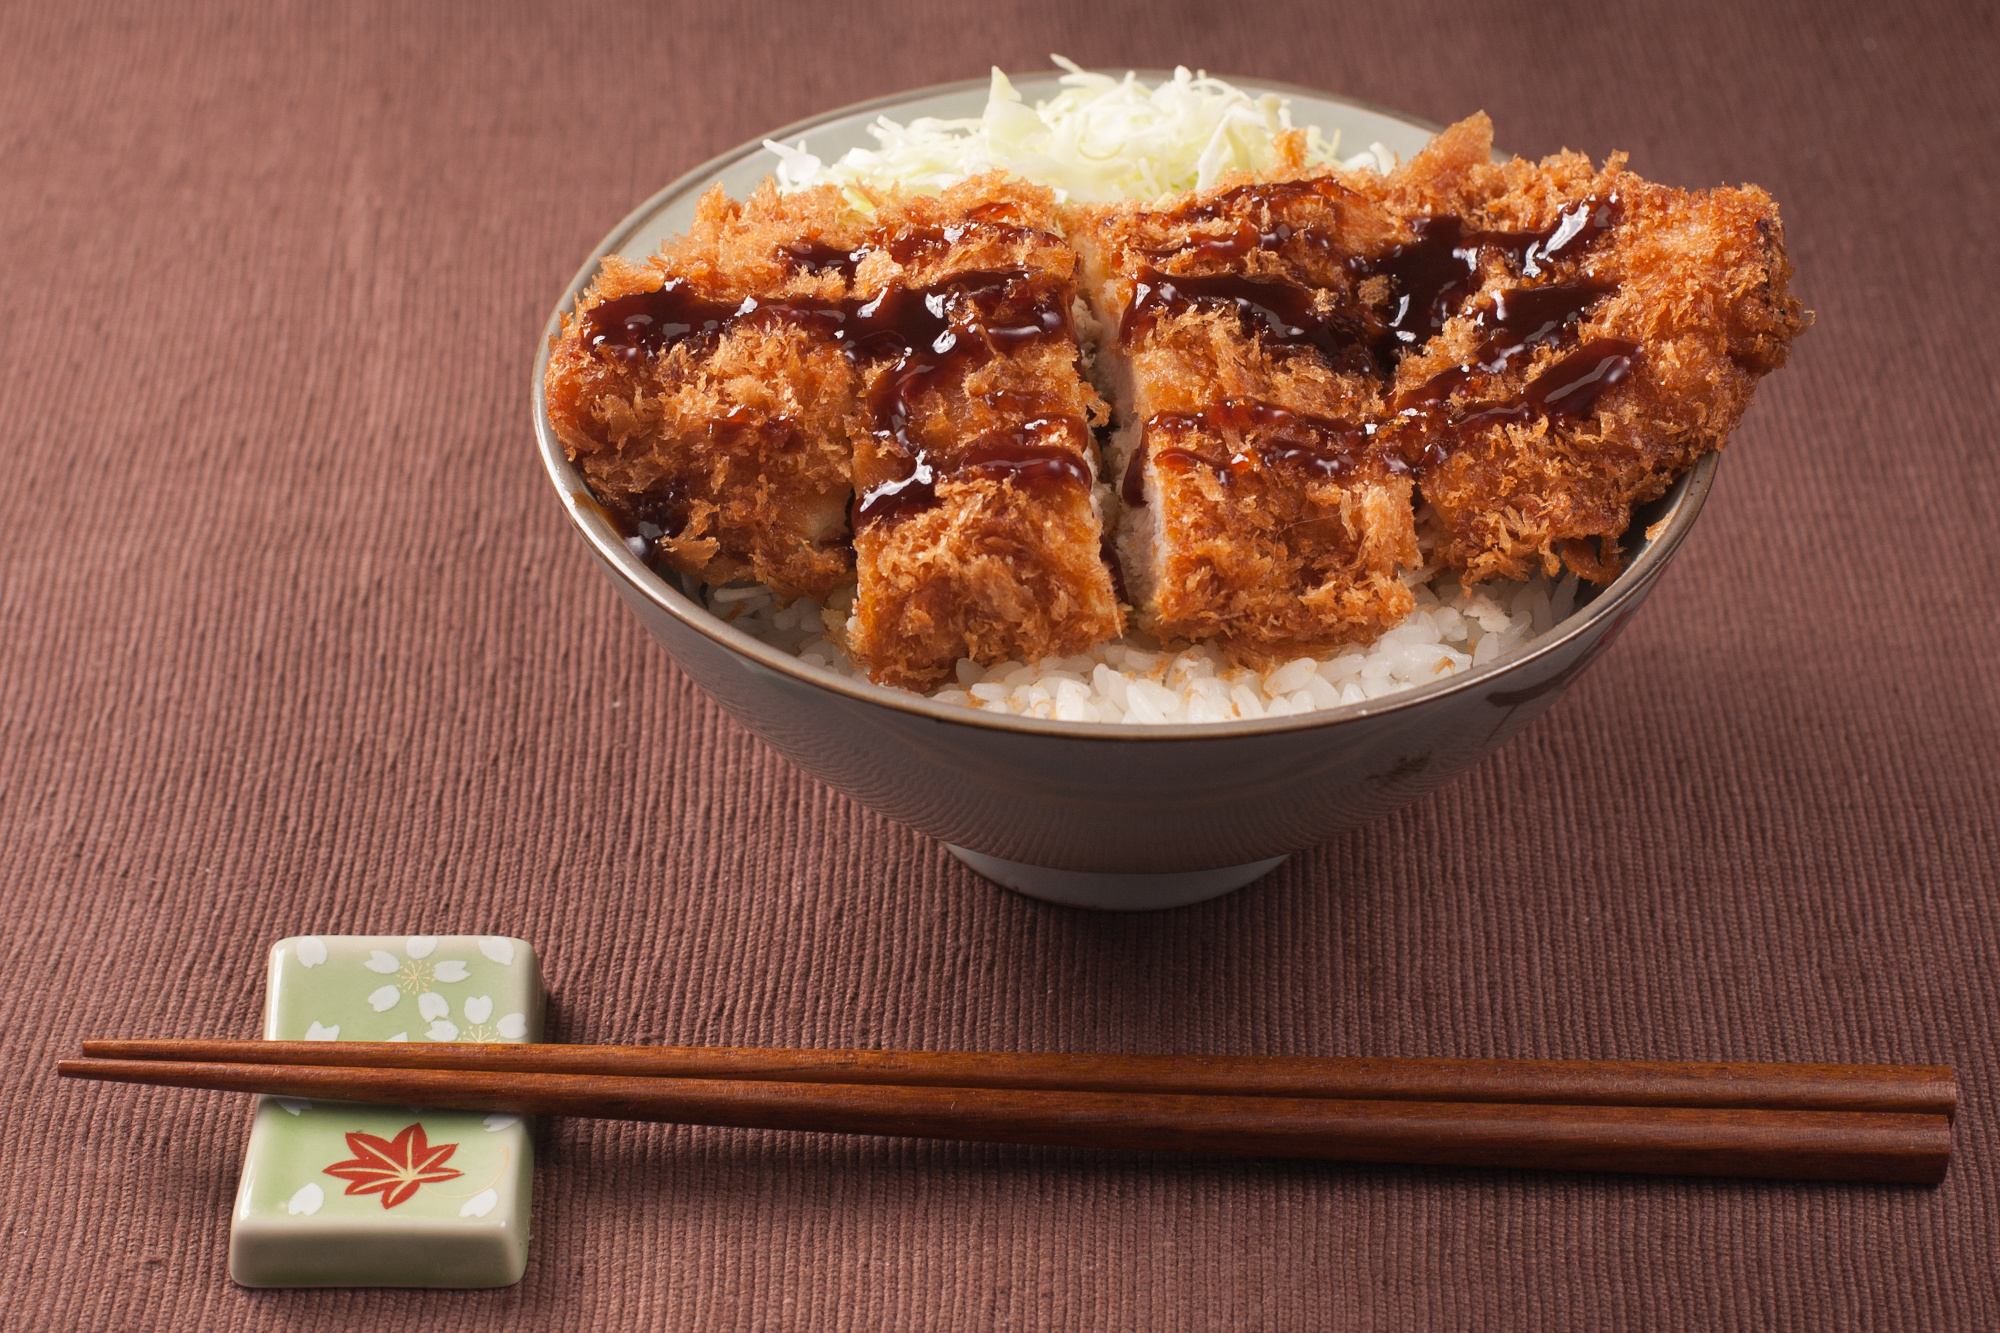 Tonkatsu, a deep friend pork cutlet, is one of Japan's most celebrated dishes.